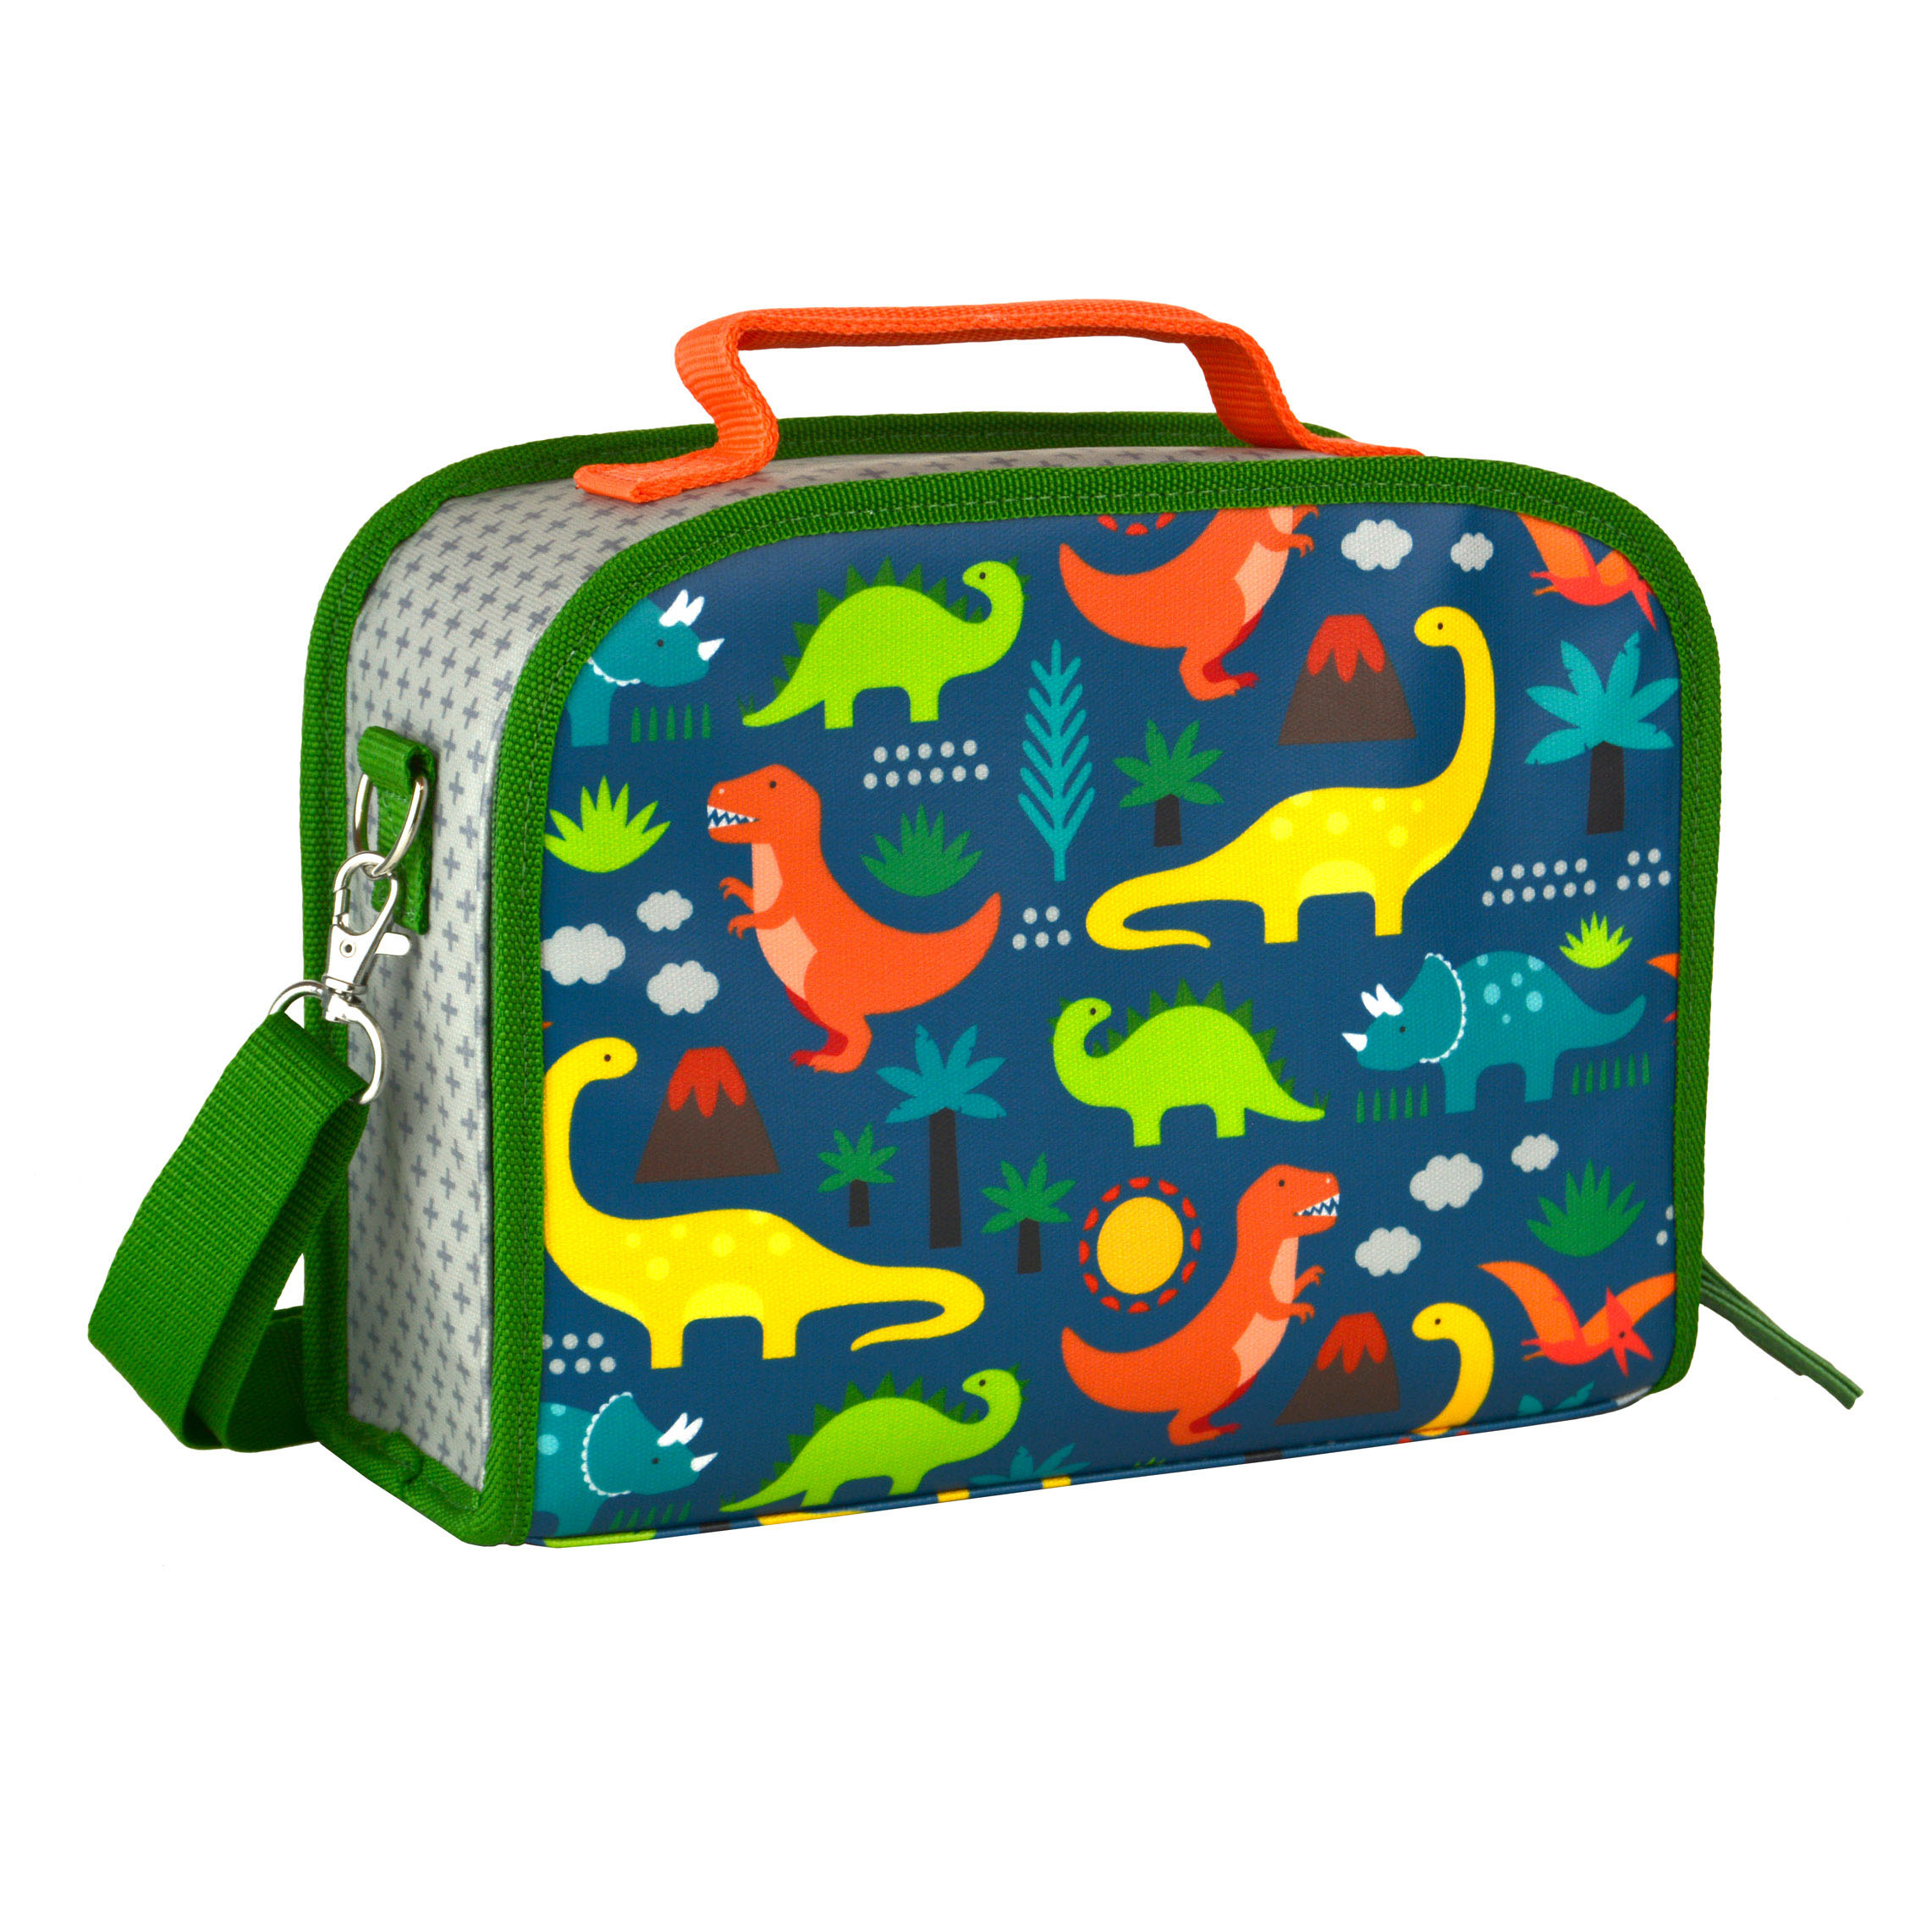 Dinosaurs Eco-Friendly Insulated Lunch Box